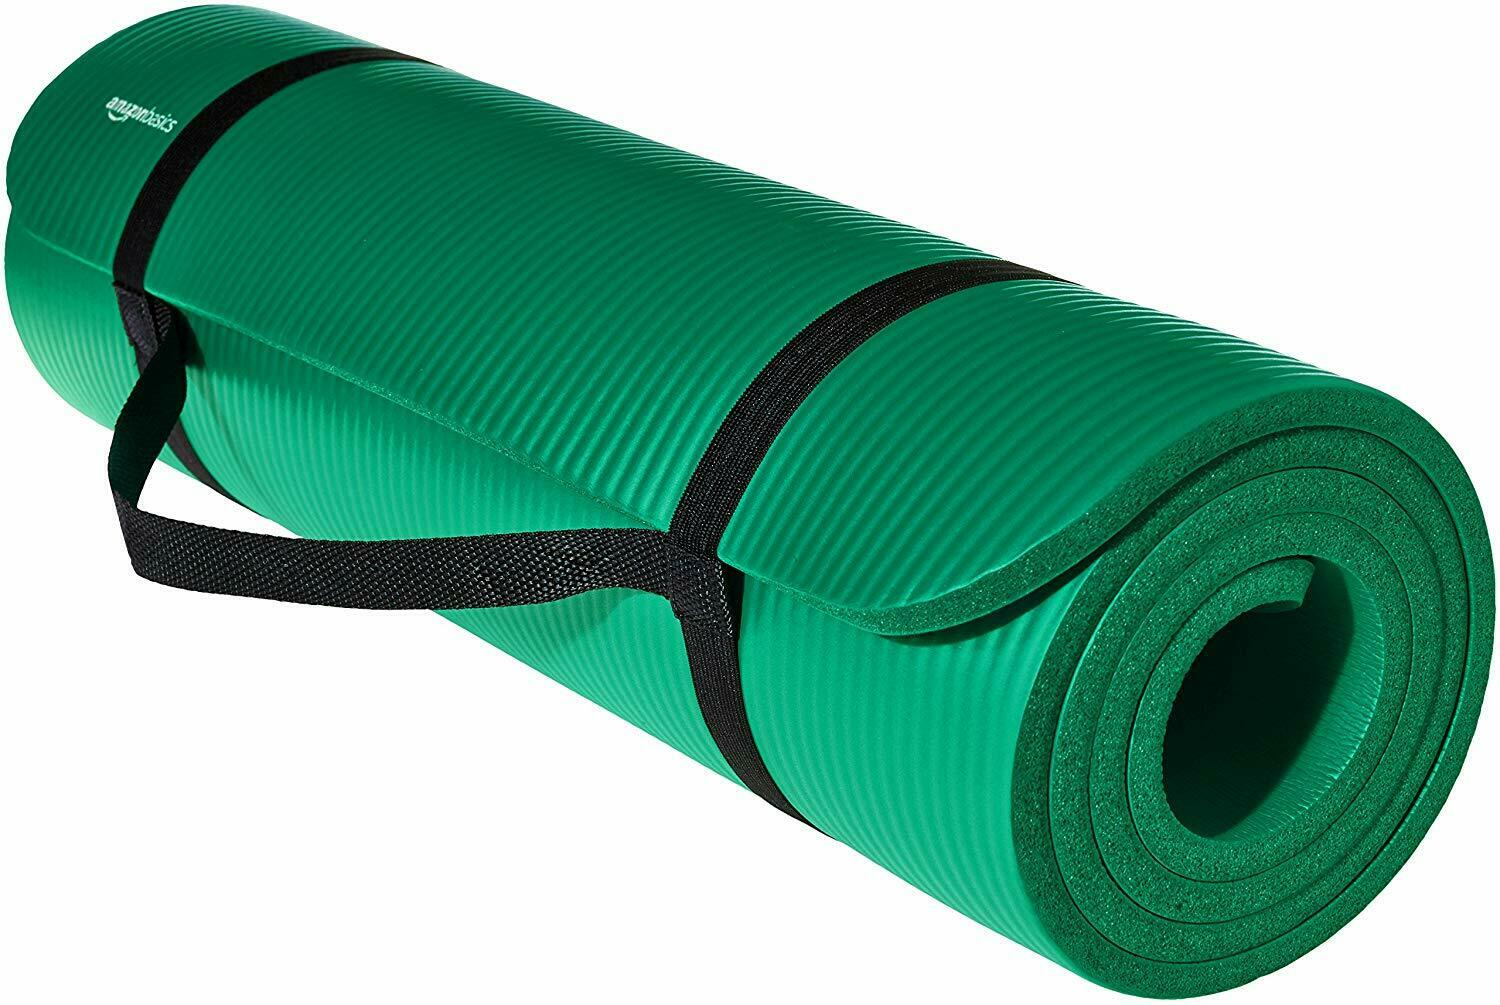 13mm extra thick yoga and exercise mat